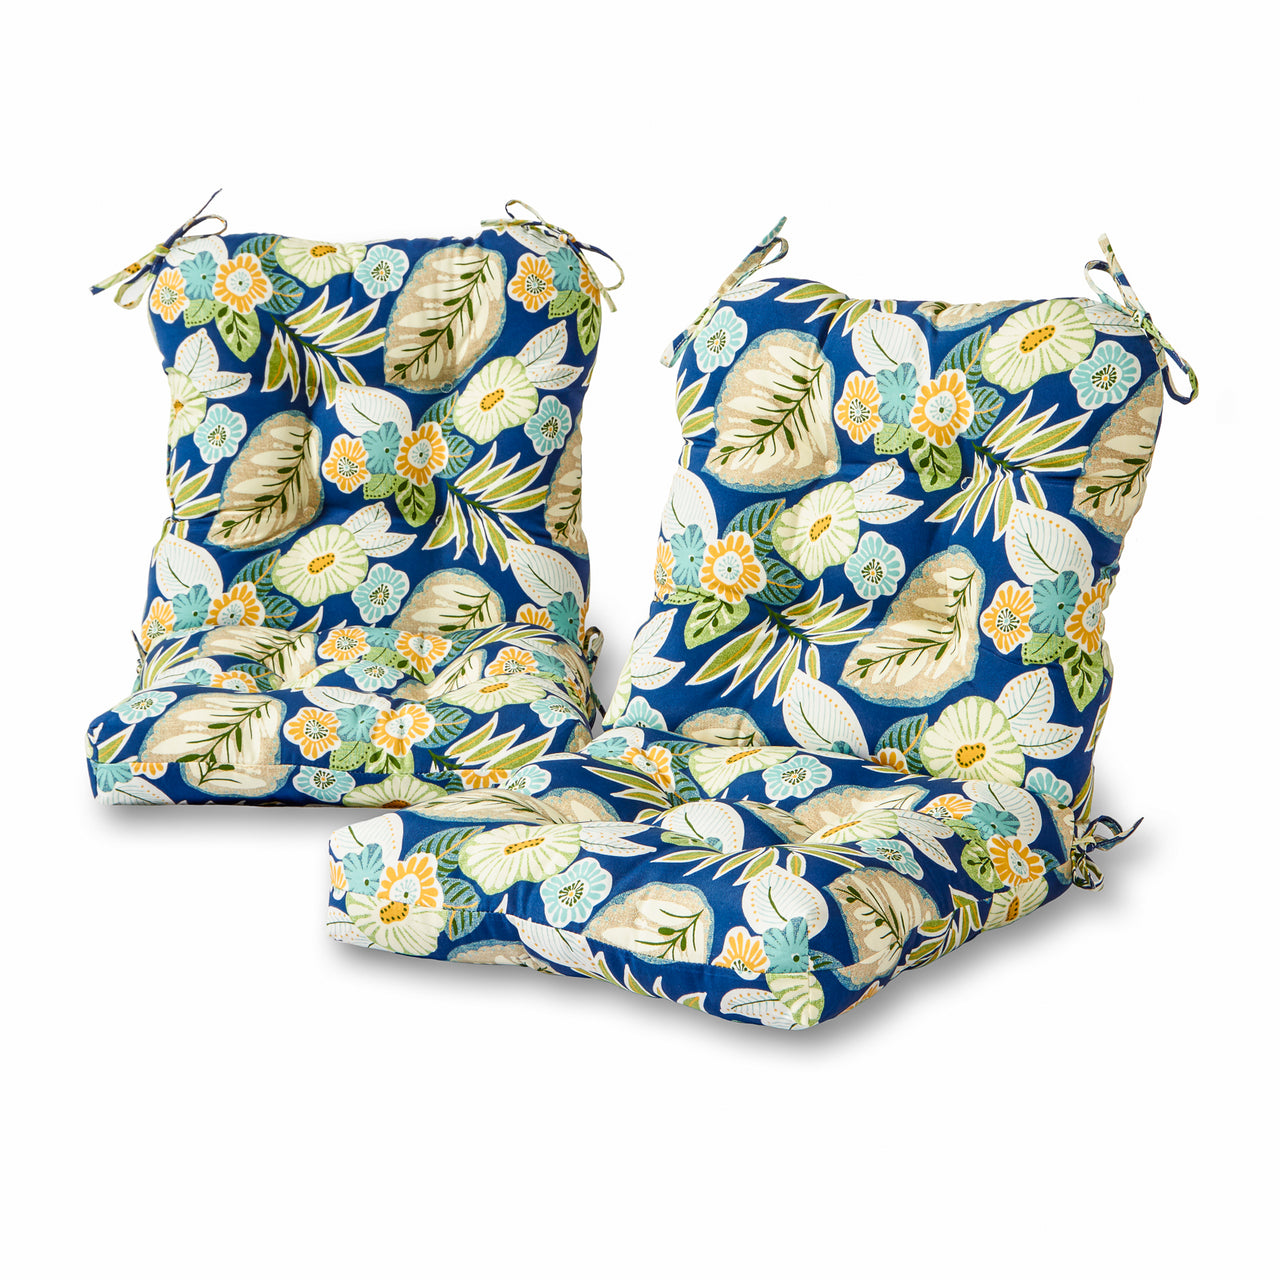 Greendale Home Fashions Marlow Outdoor Patio Chair Cushion Set Of 2